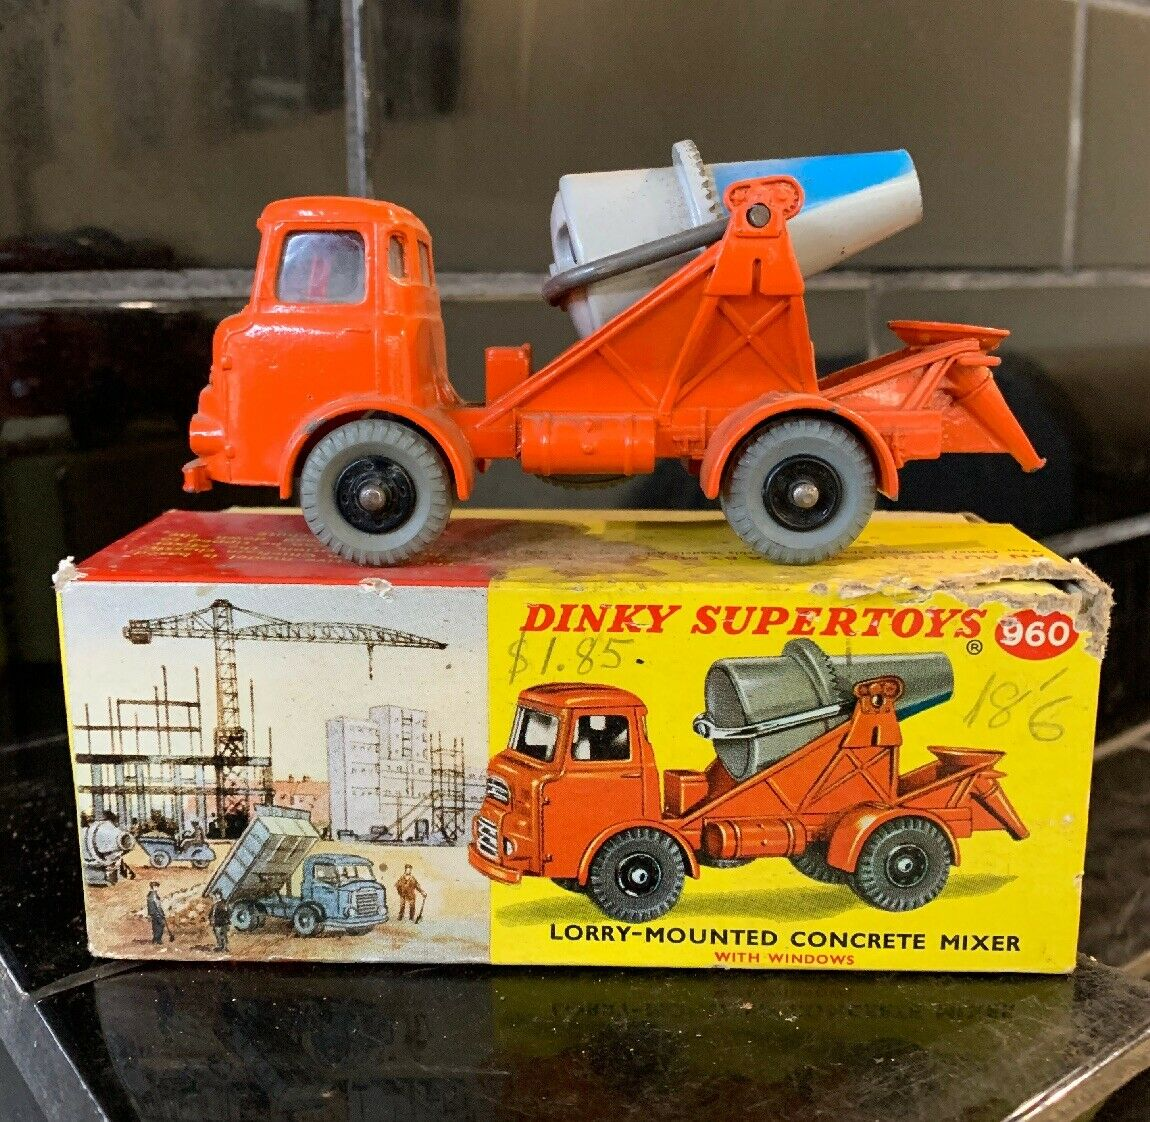 DINKY SUPERSpielzeugS LORRY-MOUNTED CONCRETE MIXER Nr.960 Jahrgang Diecast Spielzeug BOXED